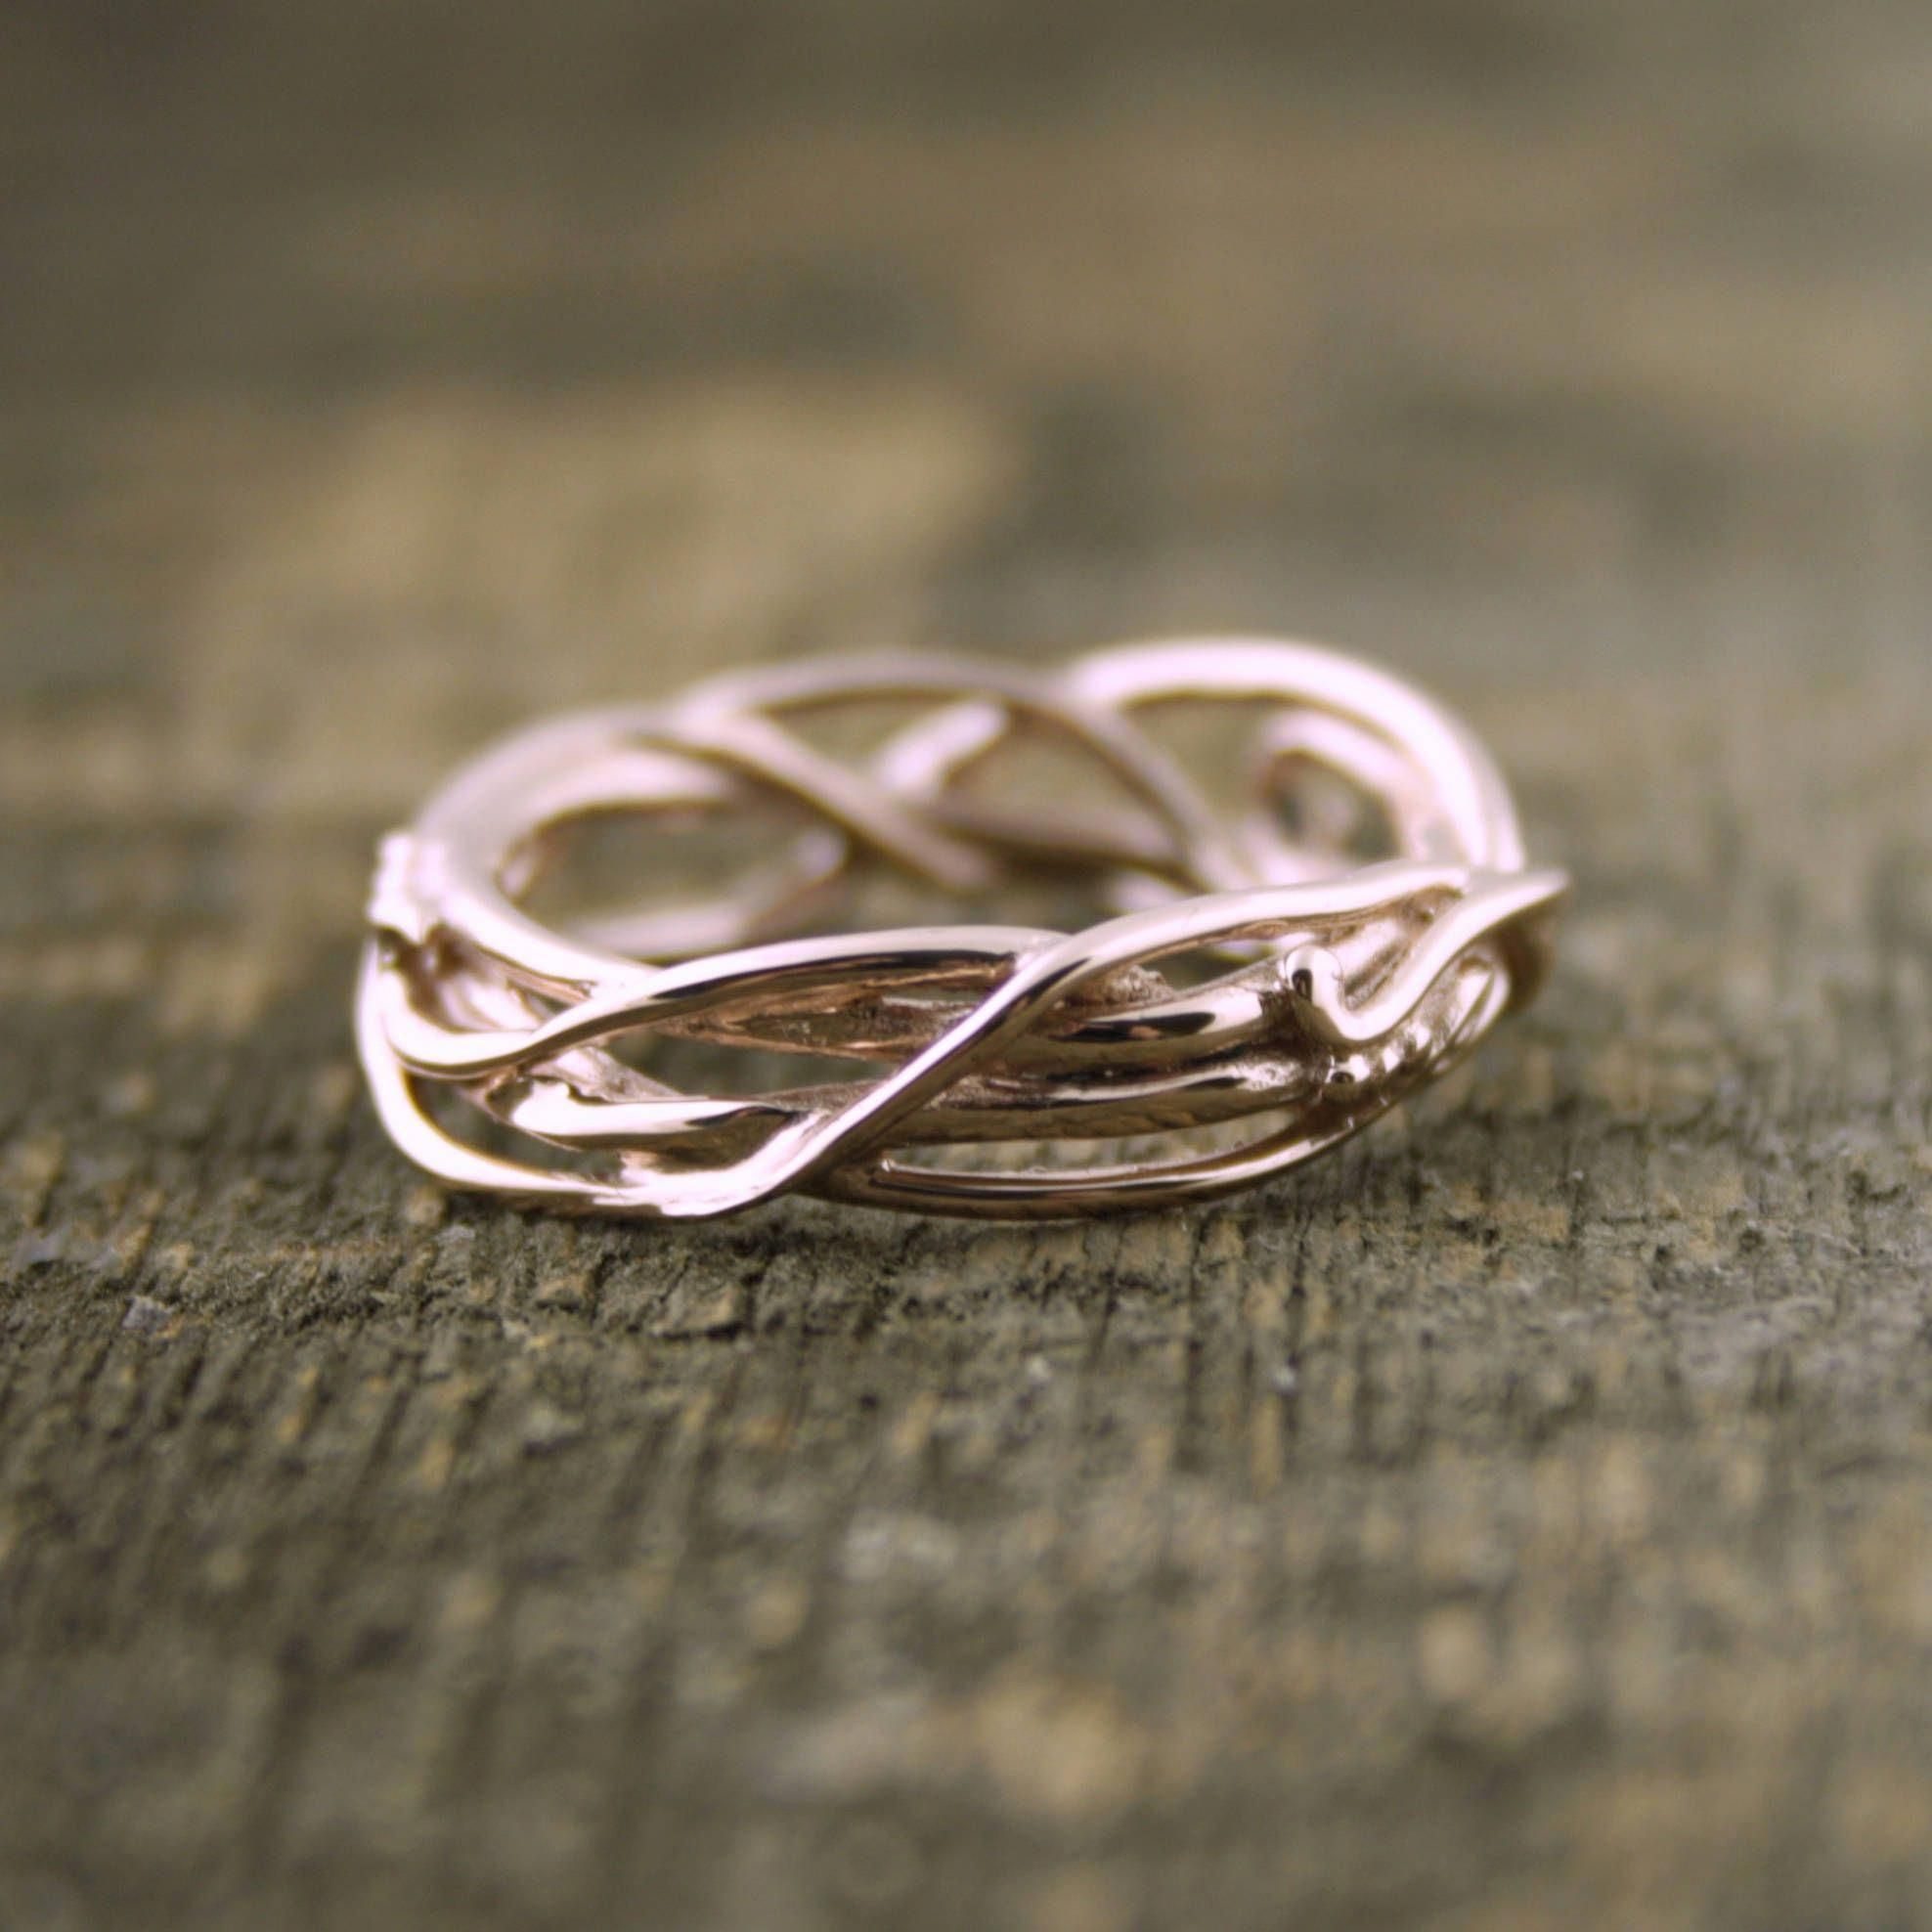 14kt Rose Gold Elvin Flow Organic Whimsical Engagement Ring Wedding Band Twig Rings Vine Dess Branch By Opalwing On Etsy